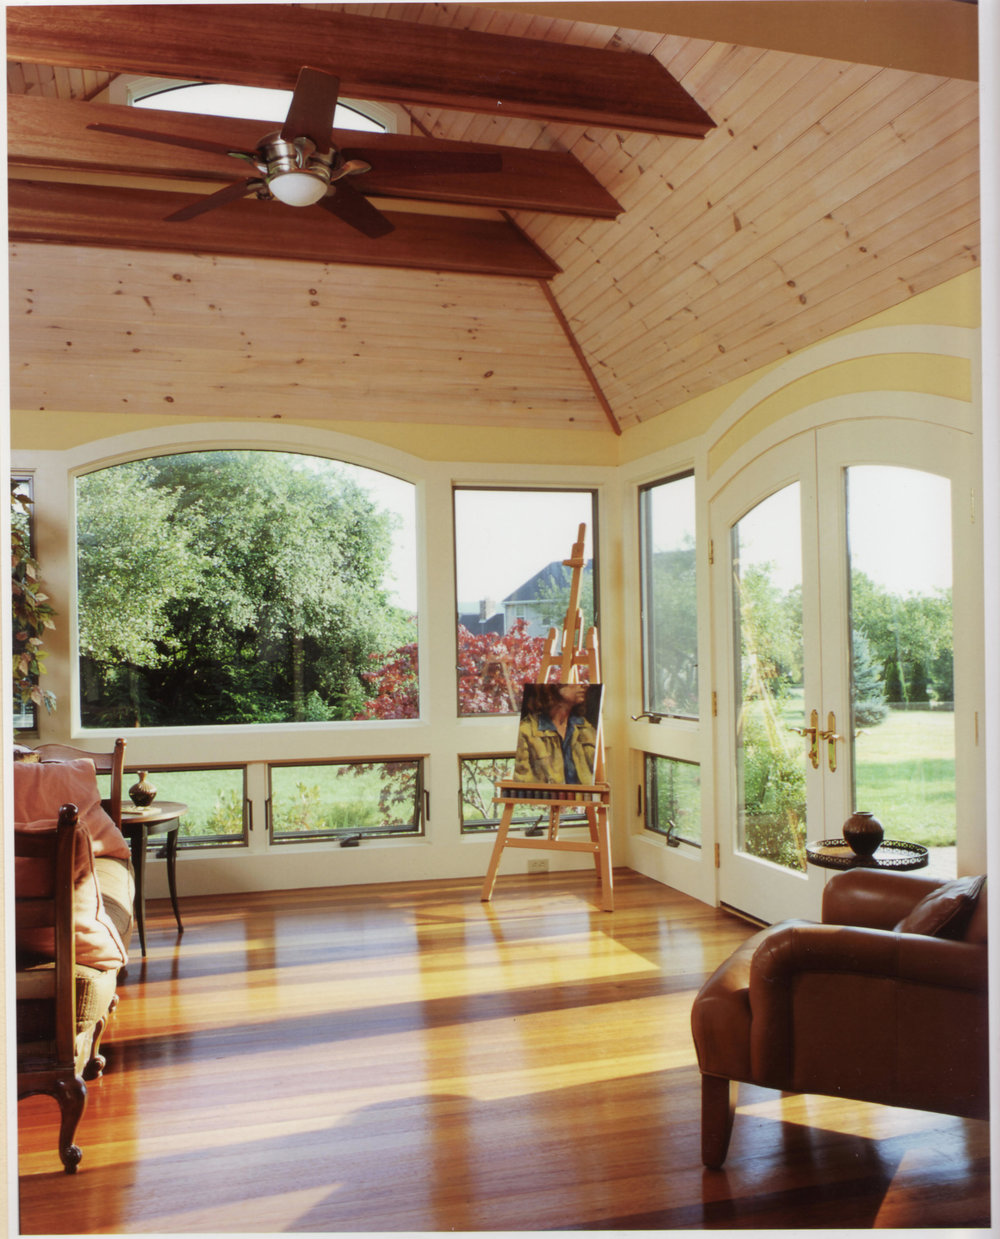 Sunroom interior_0006.jpg